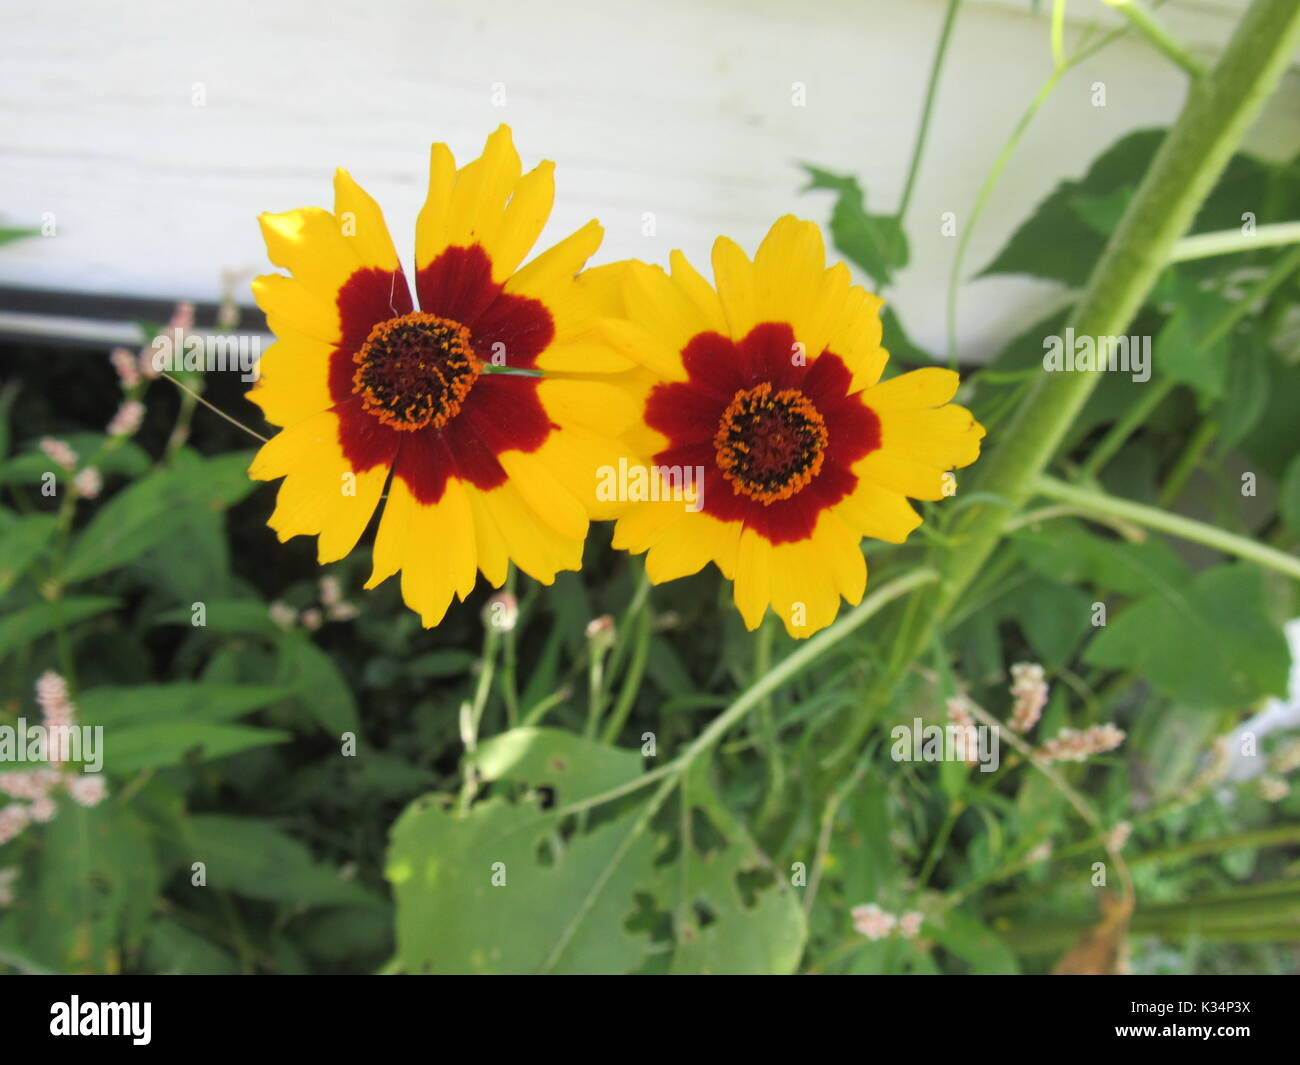 Types of daisy stock photos types of daisy stock images alamy easy to grow garden flowers in various colors and types daisy type flowers izmirmasajfo